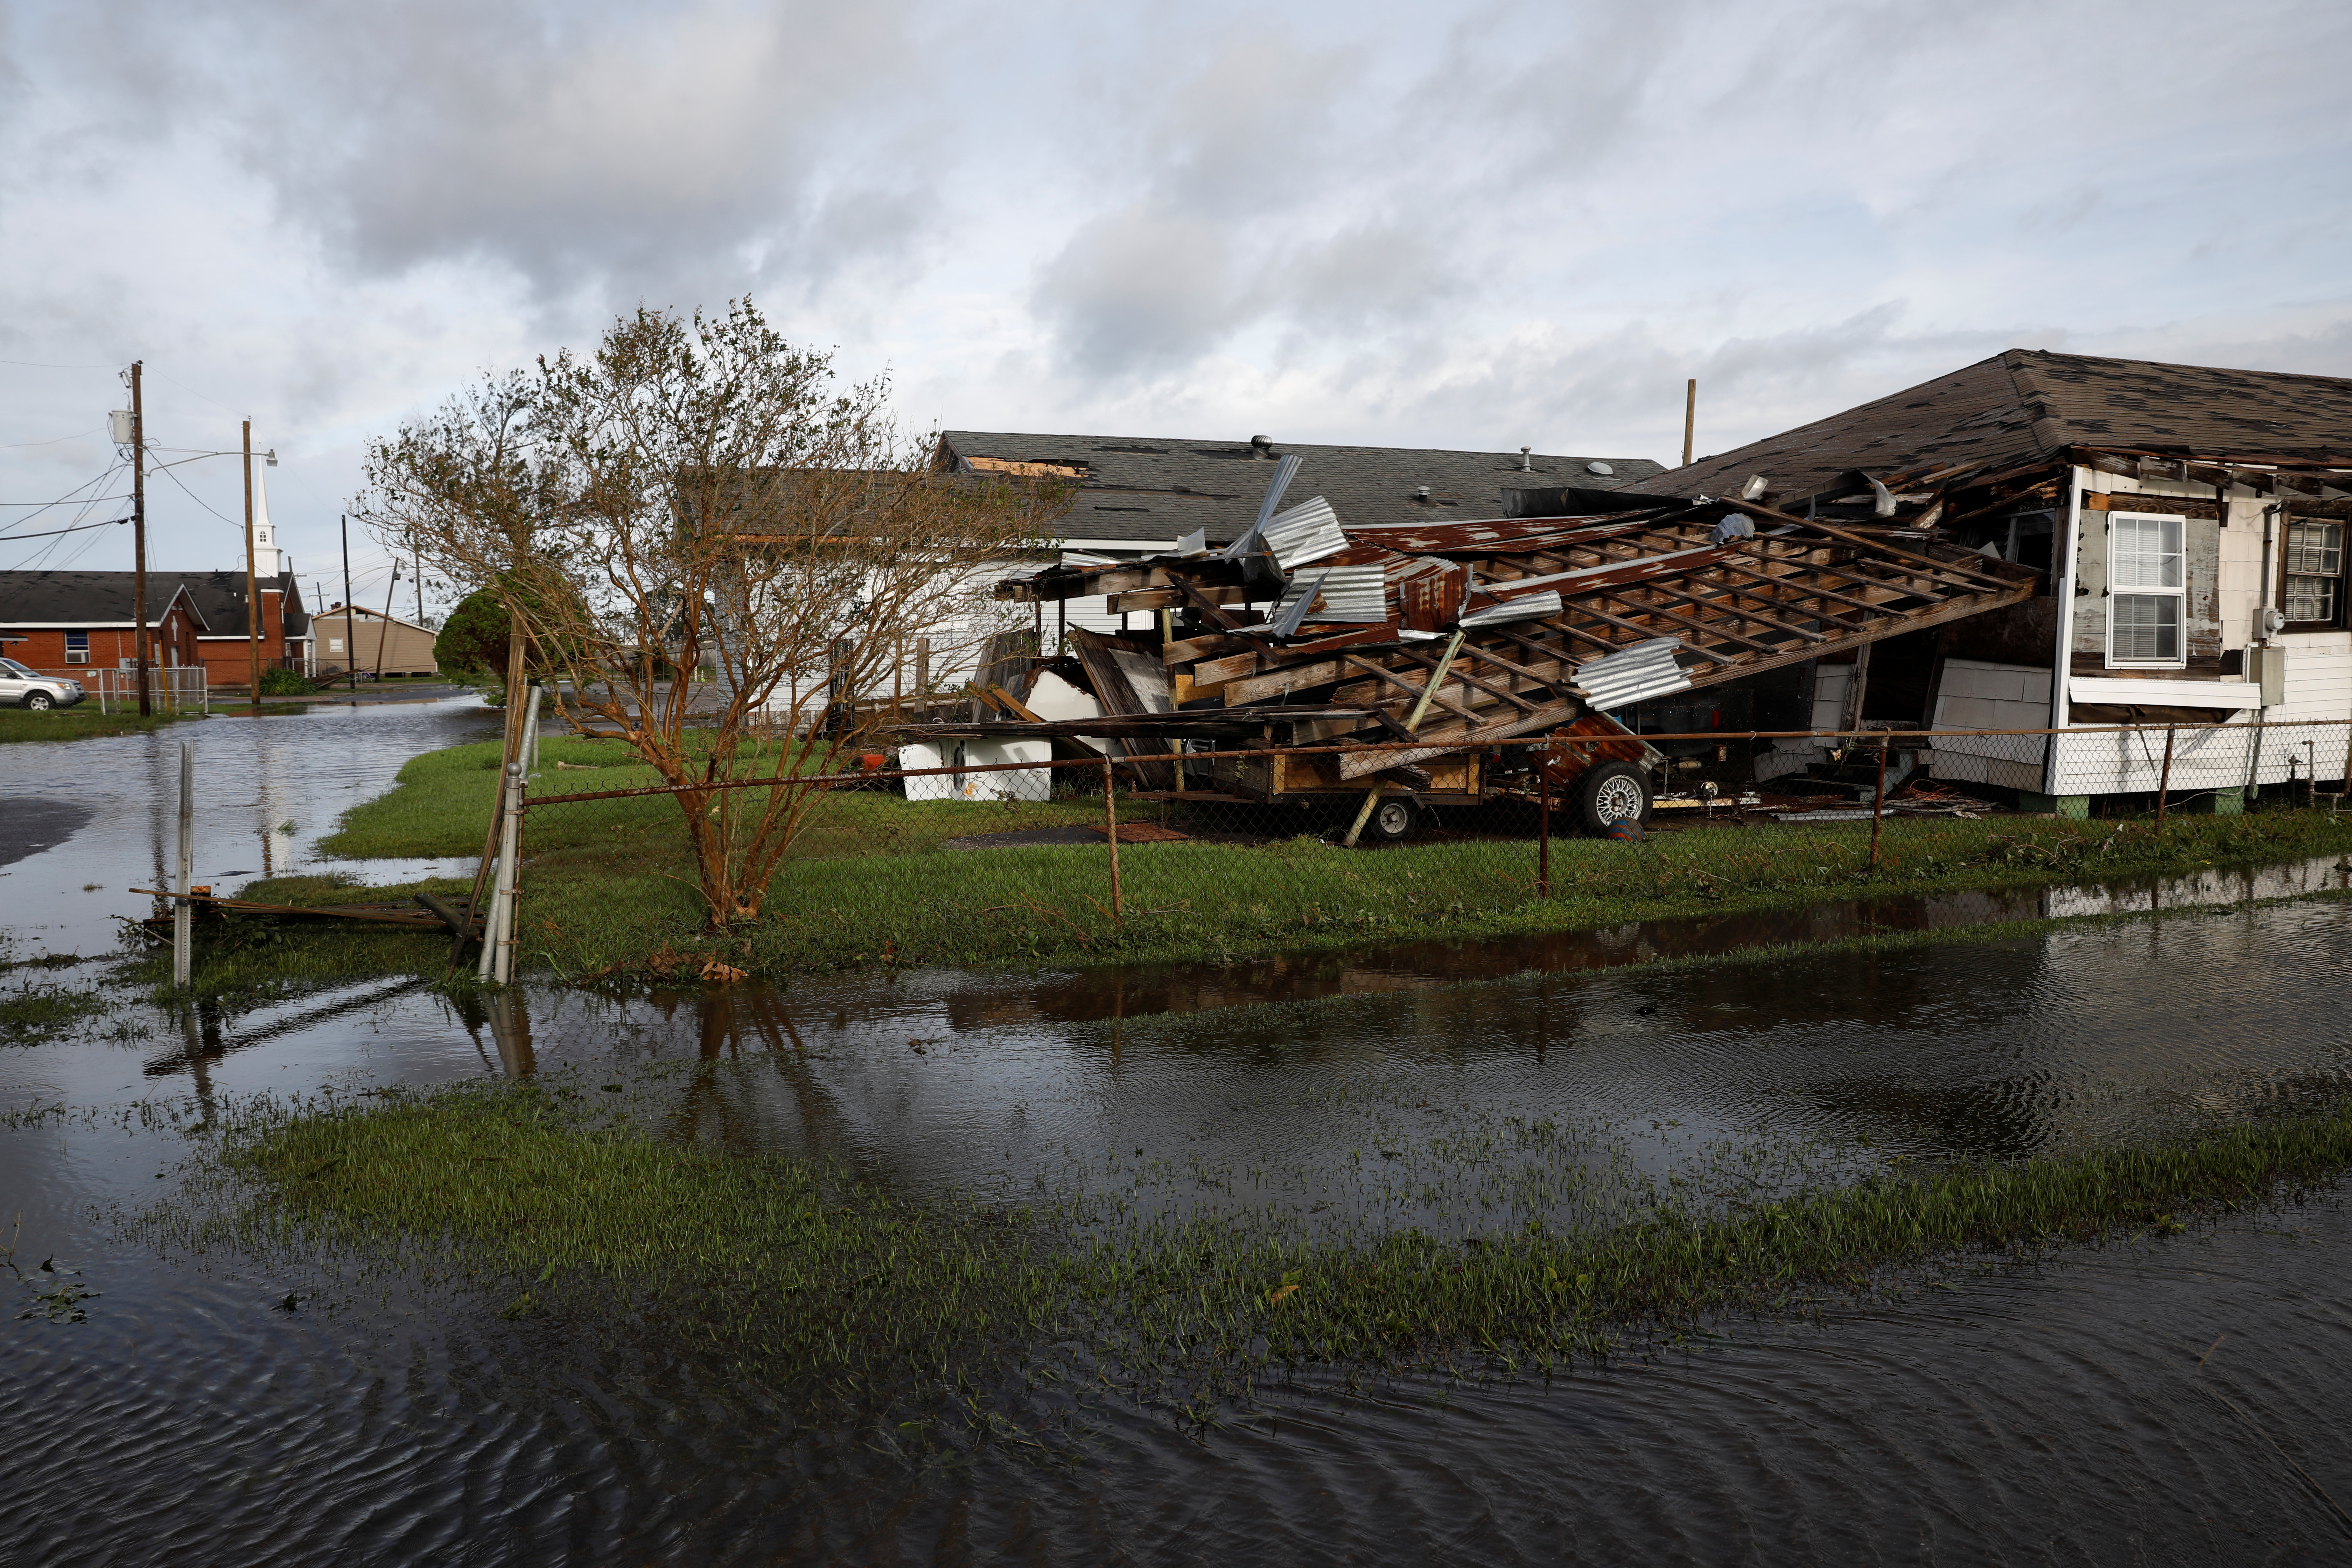 A damaged building is pictured after Hurricane Ida made landfall in Louisiana, in Kenner, Louisiana, U.S. August 30, 2021. REUTERS/Marco Bello